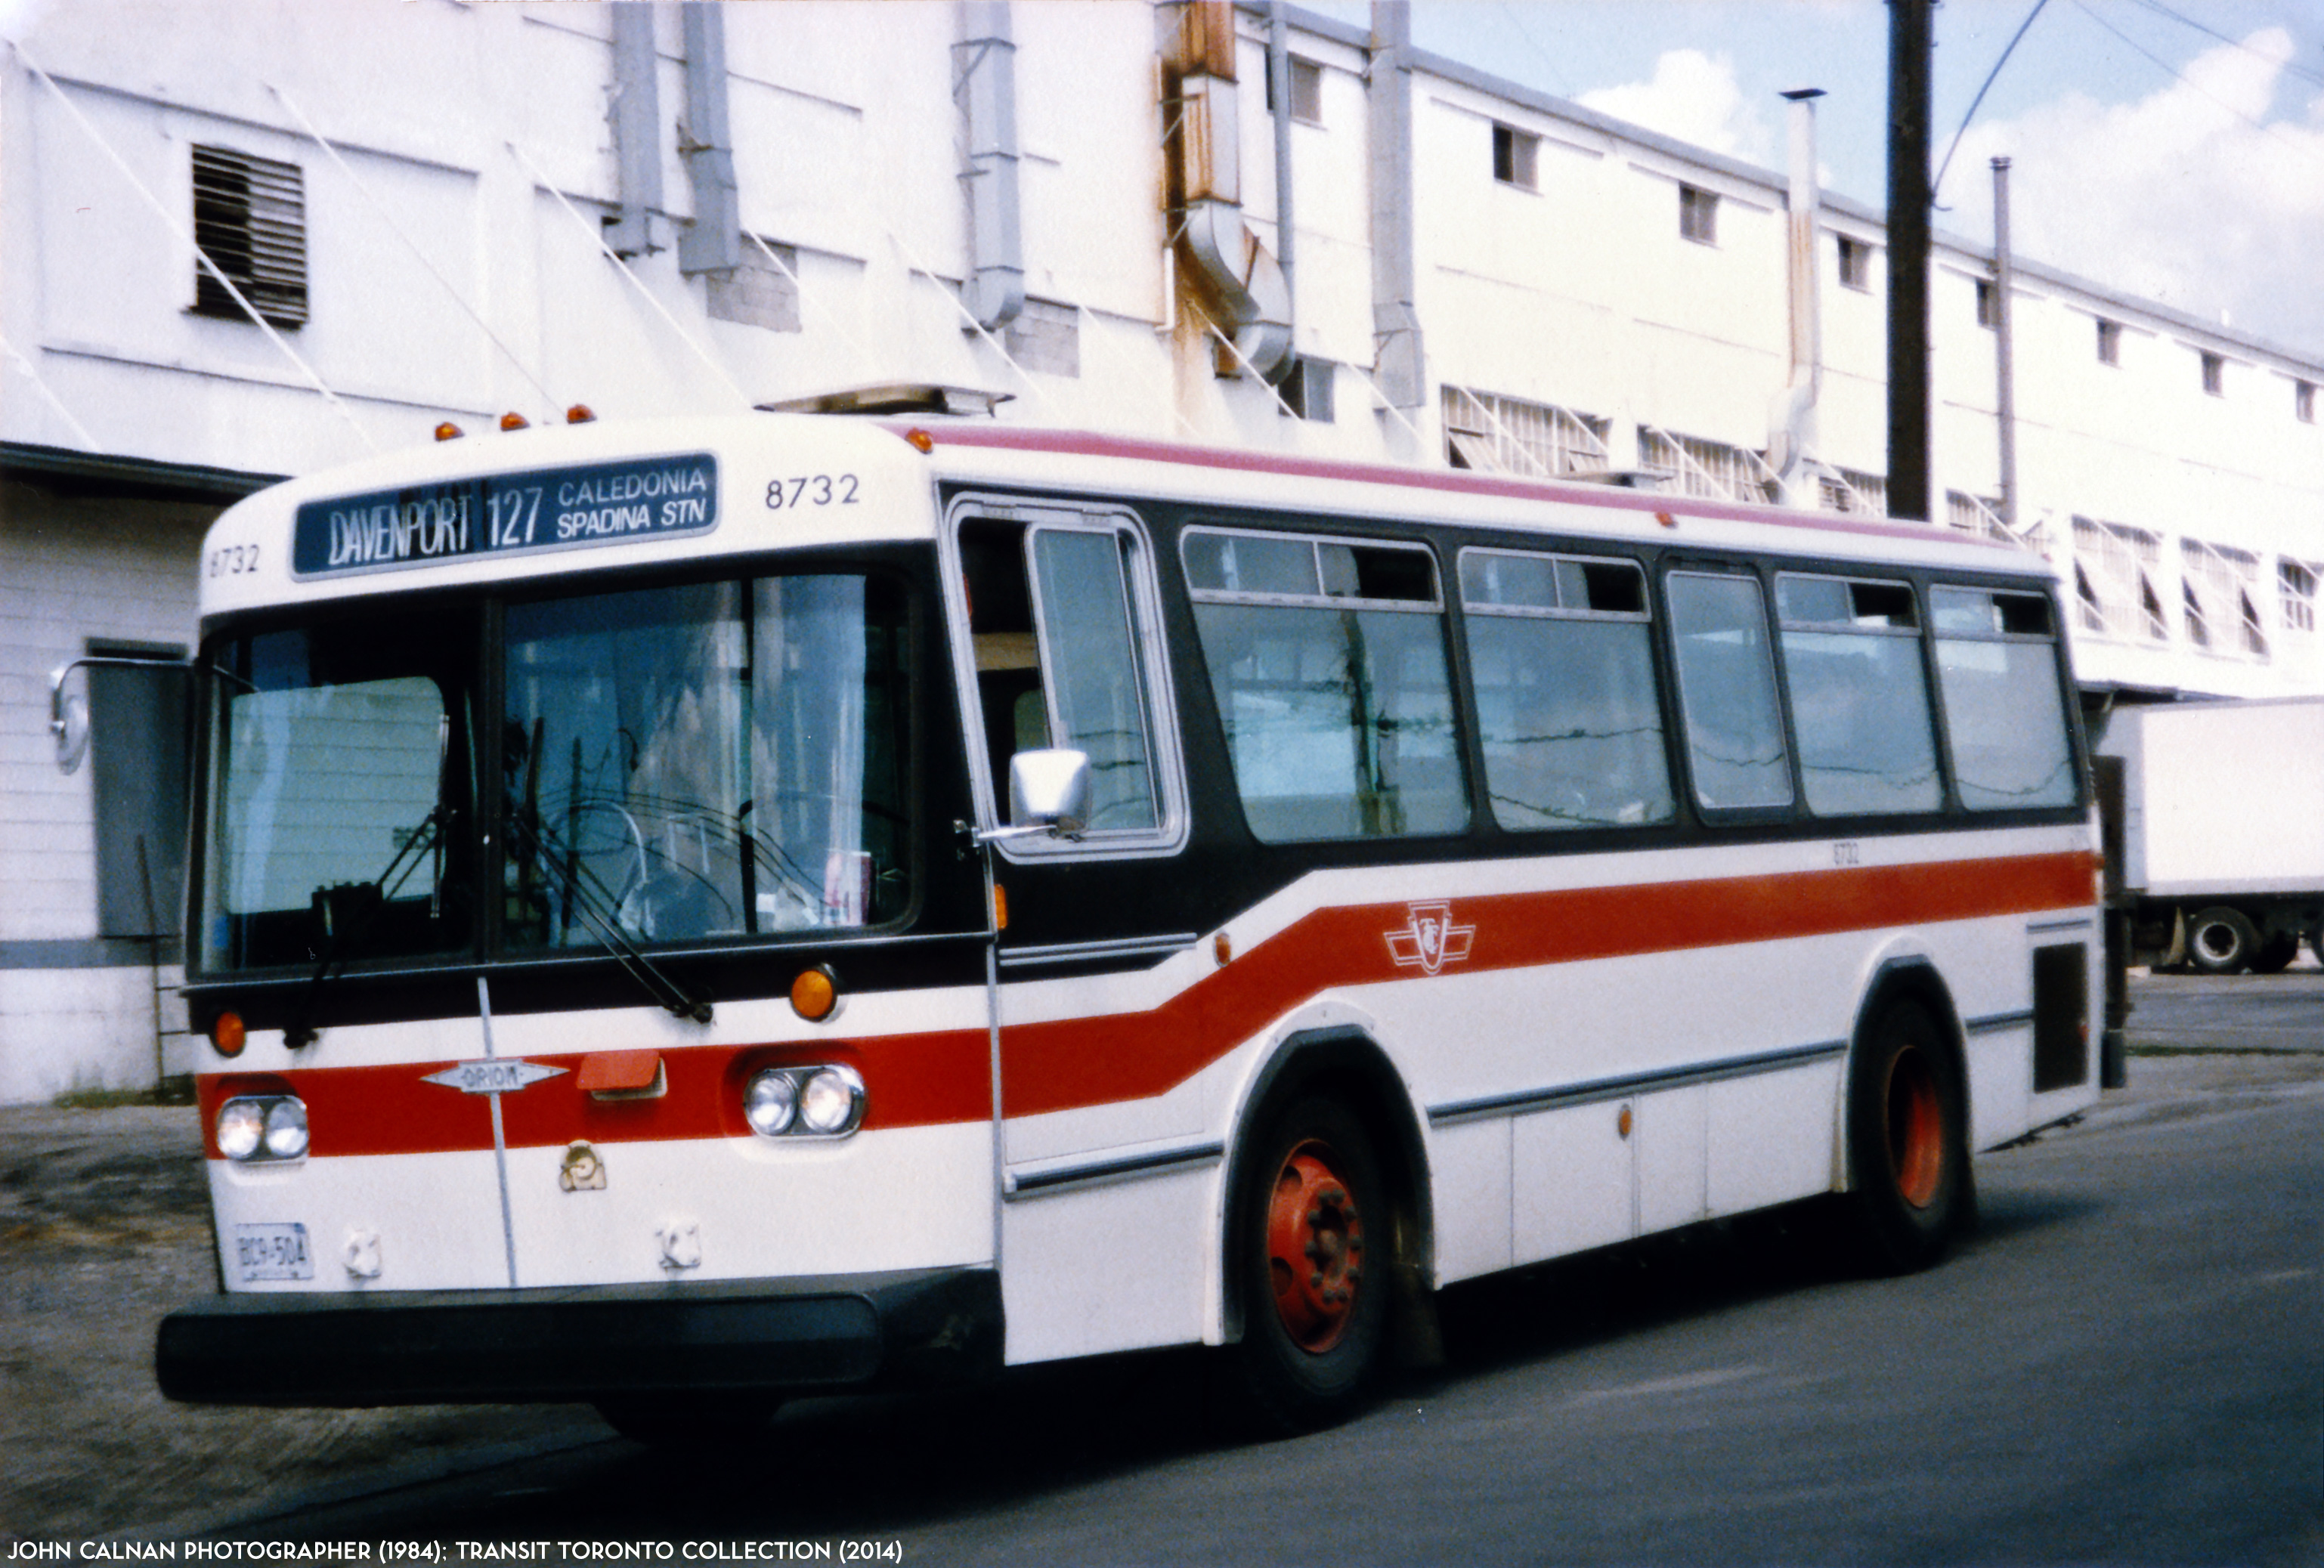 the orion i bus - transit toronto - content